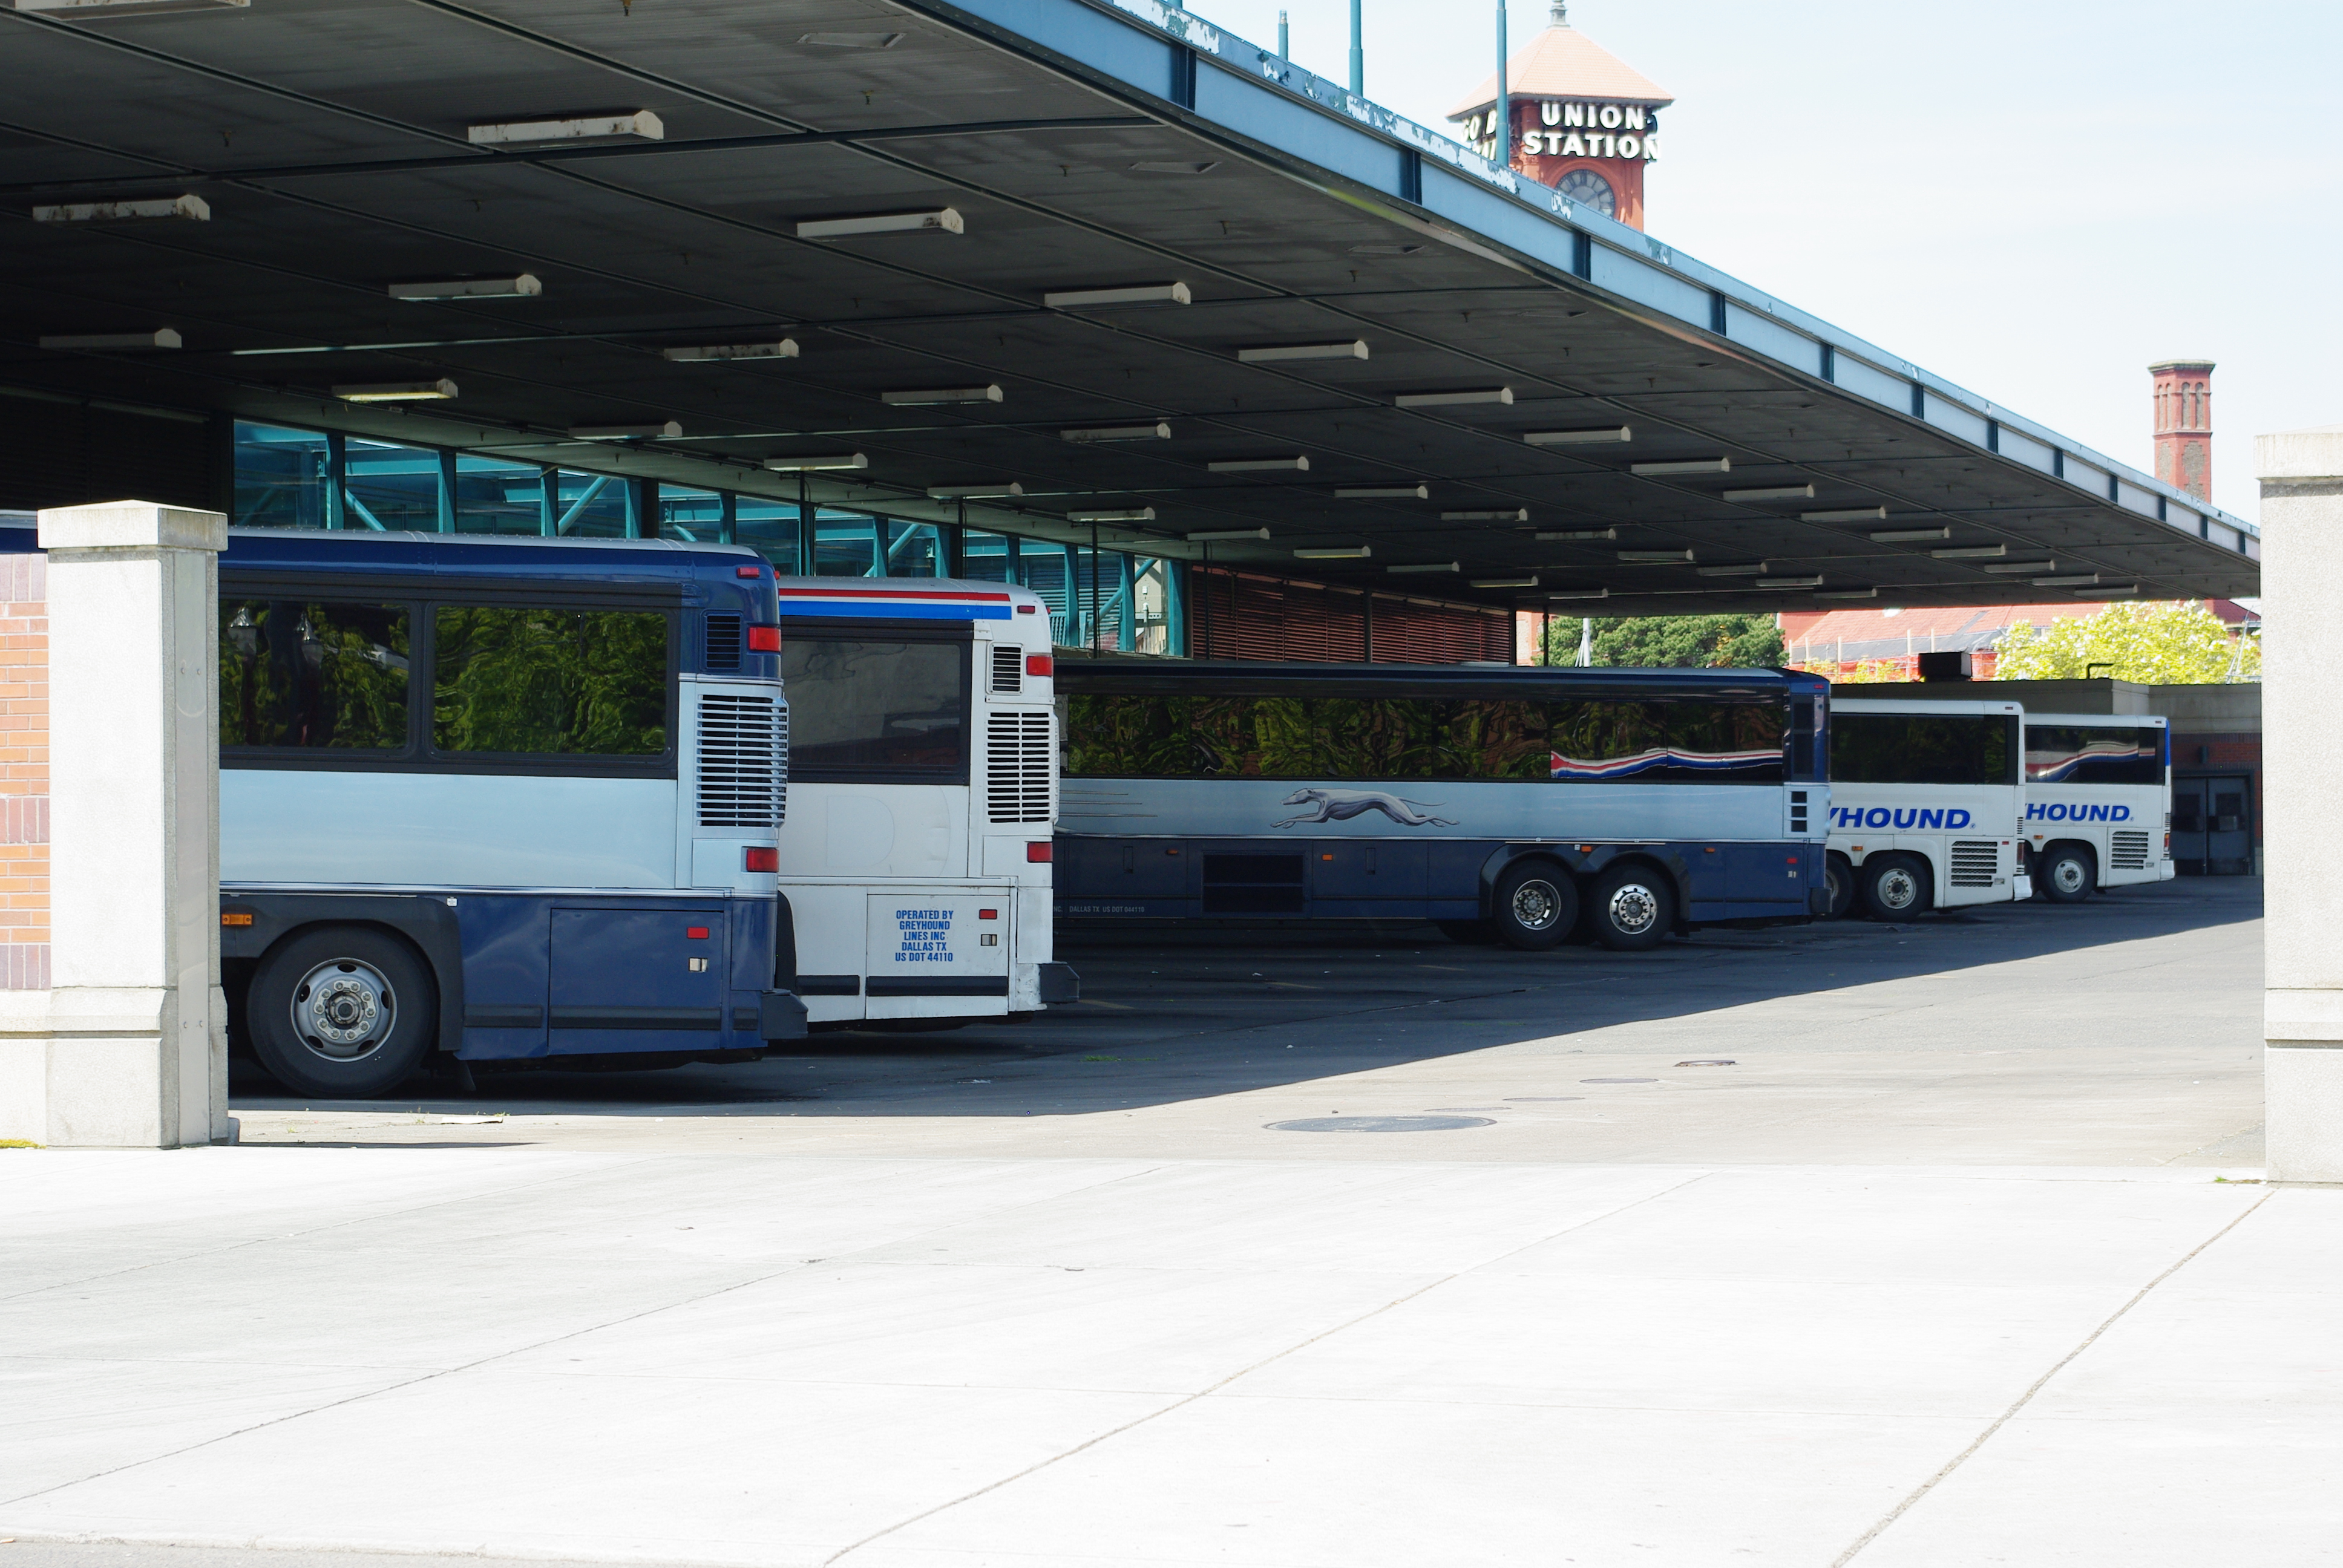 Greyhound is a leading bus company based in Dallas, Texas, serving over destinations across North America, Mexico and Canada. Greyhound carries around 18 million passengers a year who travel billion miles ( billion km) a year on their fleet of around vehicles.